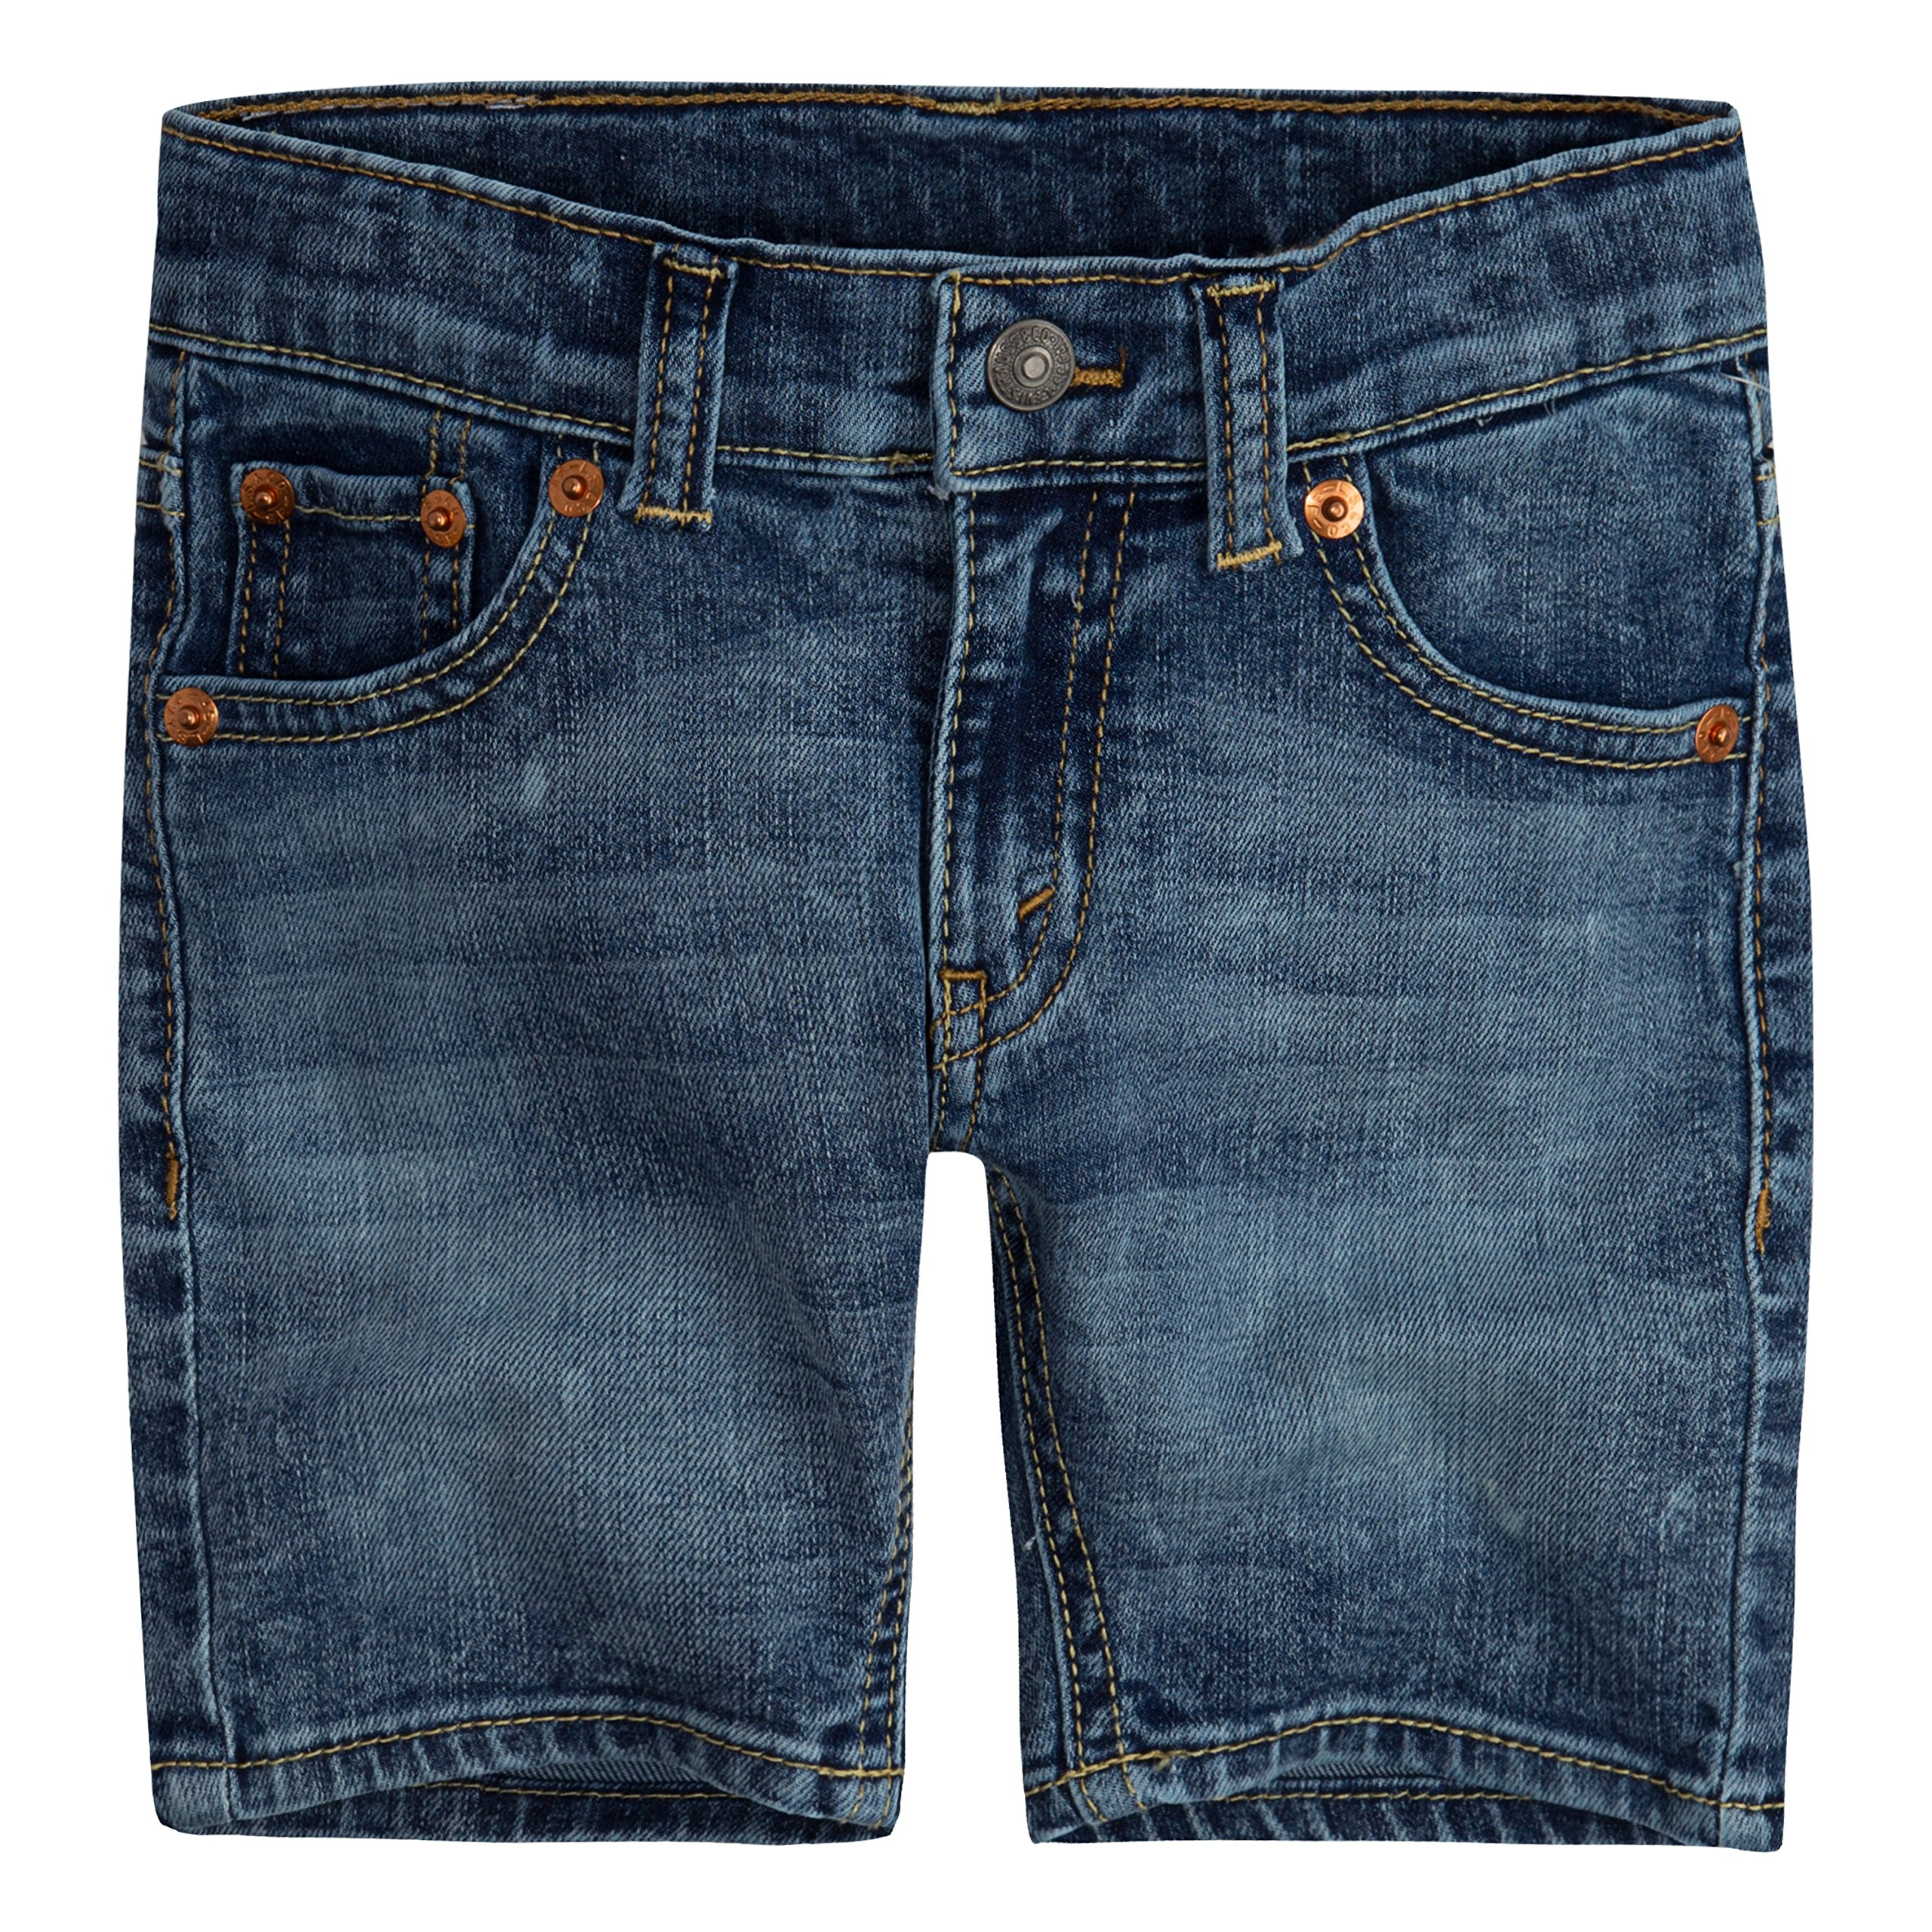 Levi's Big Boys' 511 Performance Shorts, Kosmo, 12 by Levi's (Image #1)